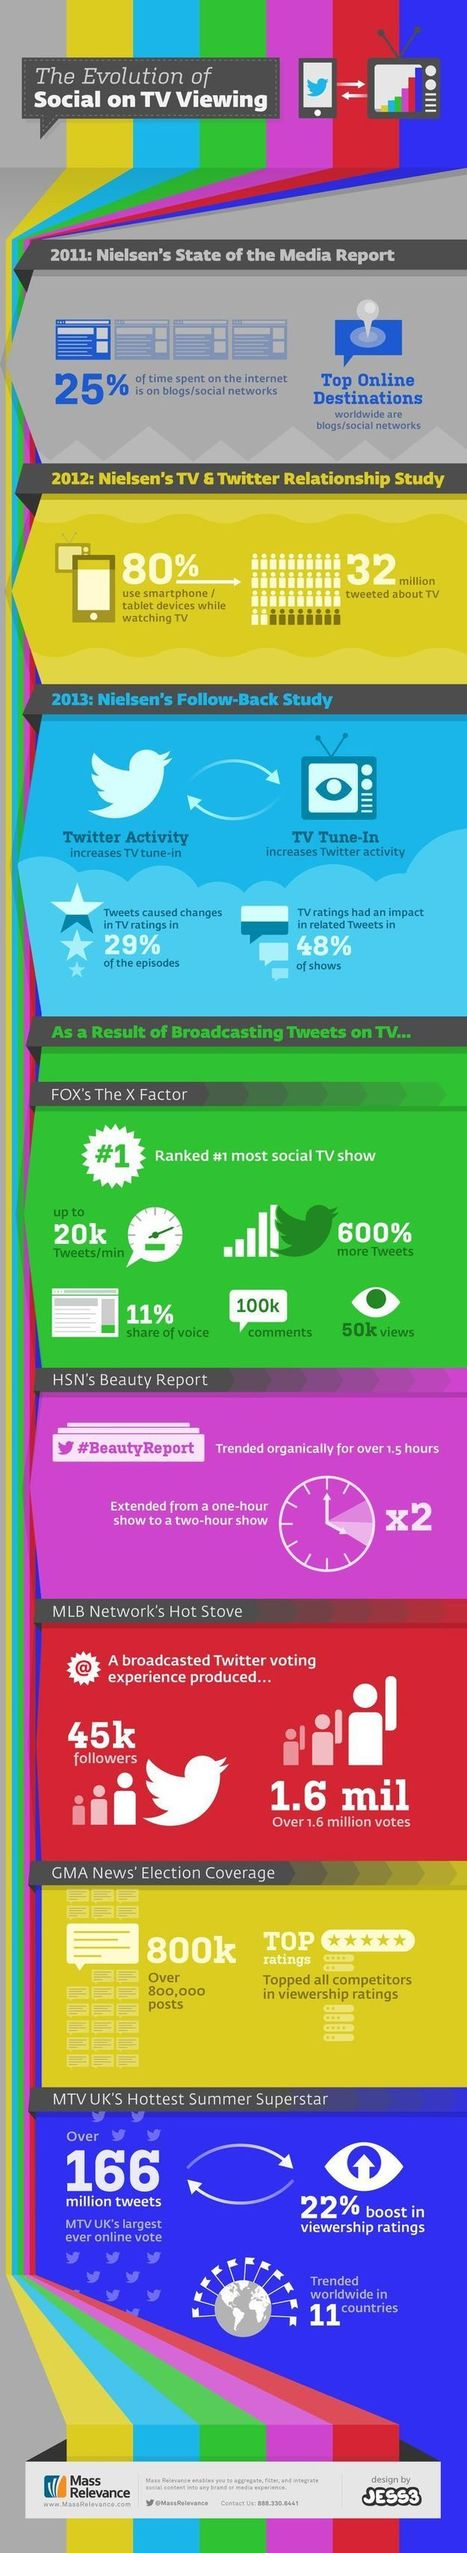 The Evolution of Social on TV Viewing | Média & Mutations digitales | Scoop.it